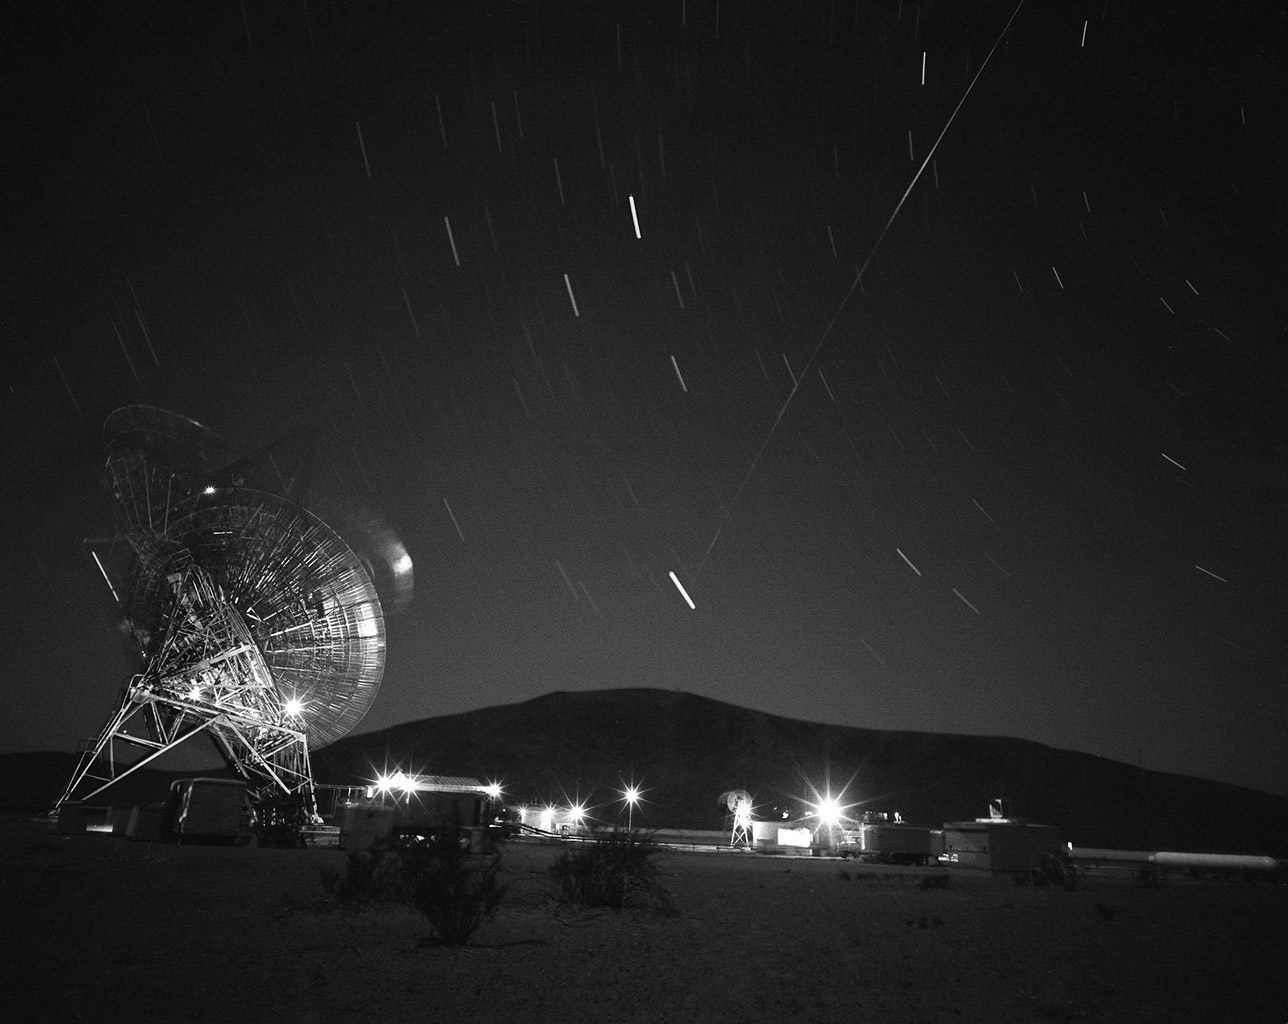 This archival photograph shows the first pass of Echo 1, America's first communications satellite, over the Goldstone Tracking Station managed by NASA's Jet Propulsion Laboratory, in Pasadena, California, in the early morning of Aug. 12, 1960.